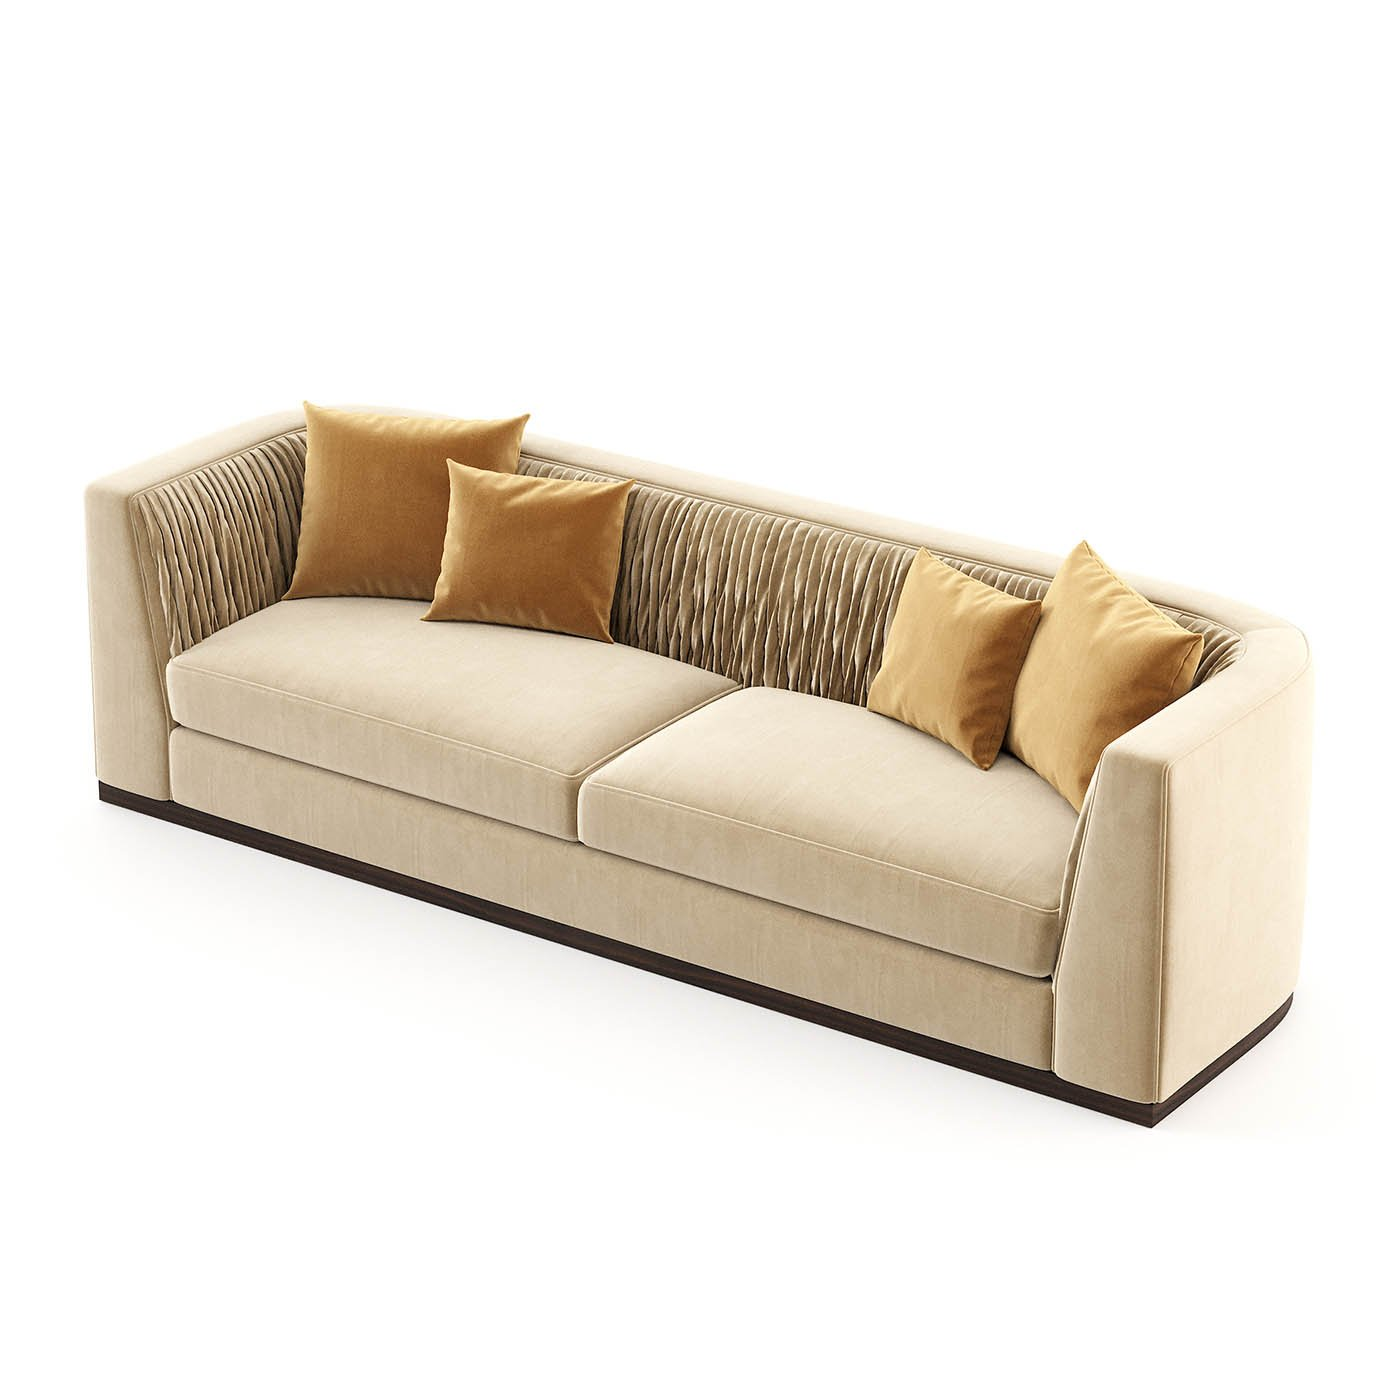 Miuzza Sofa